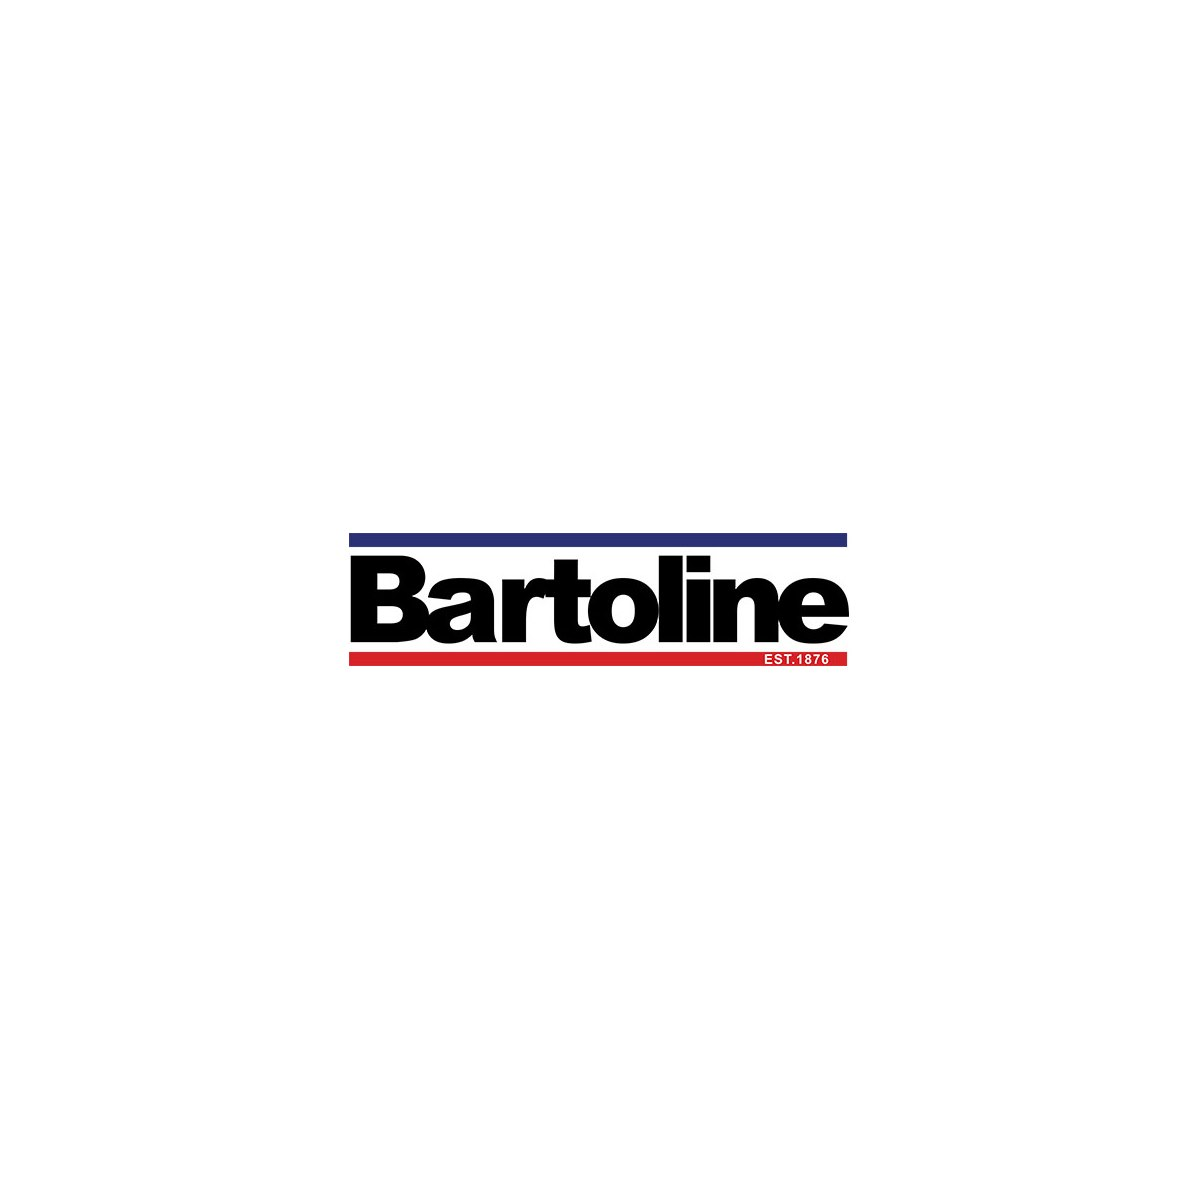 Where to Buy Bartoline Products